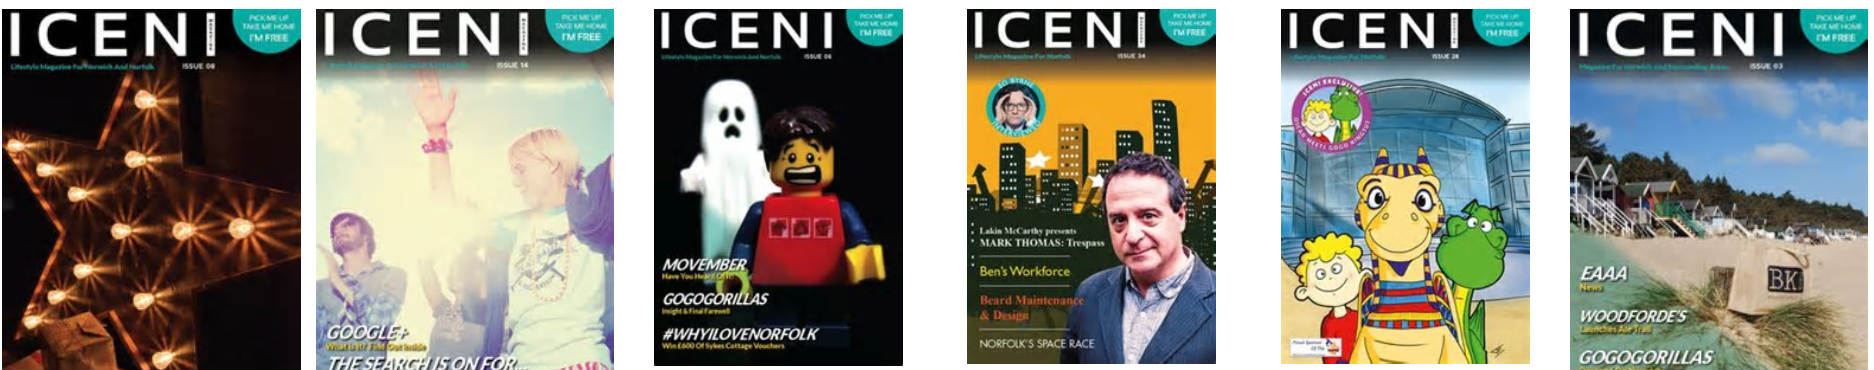 selection of Iceni Magazine covers